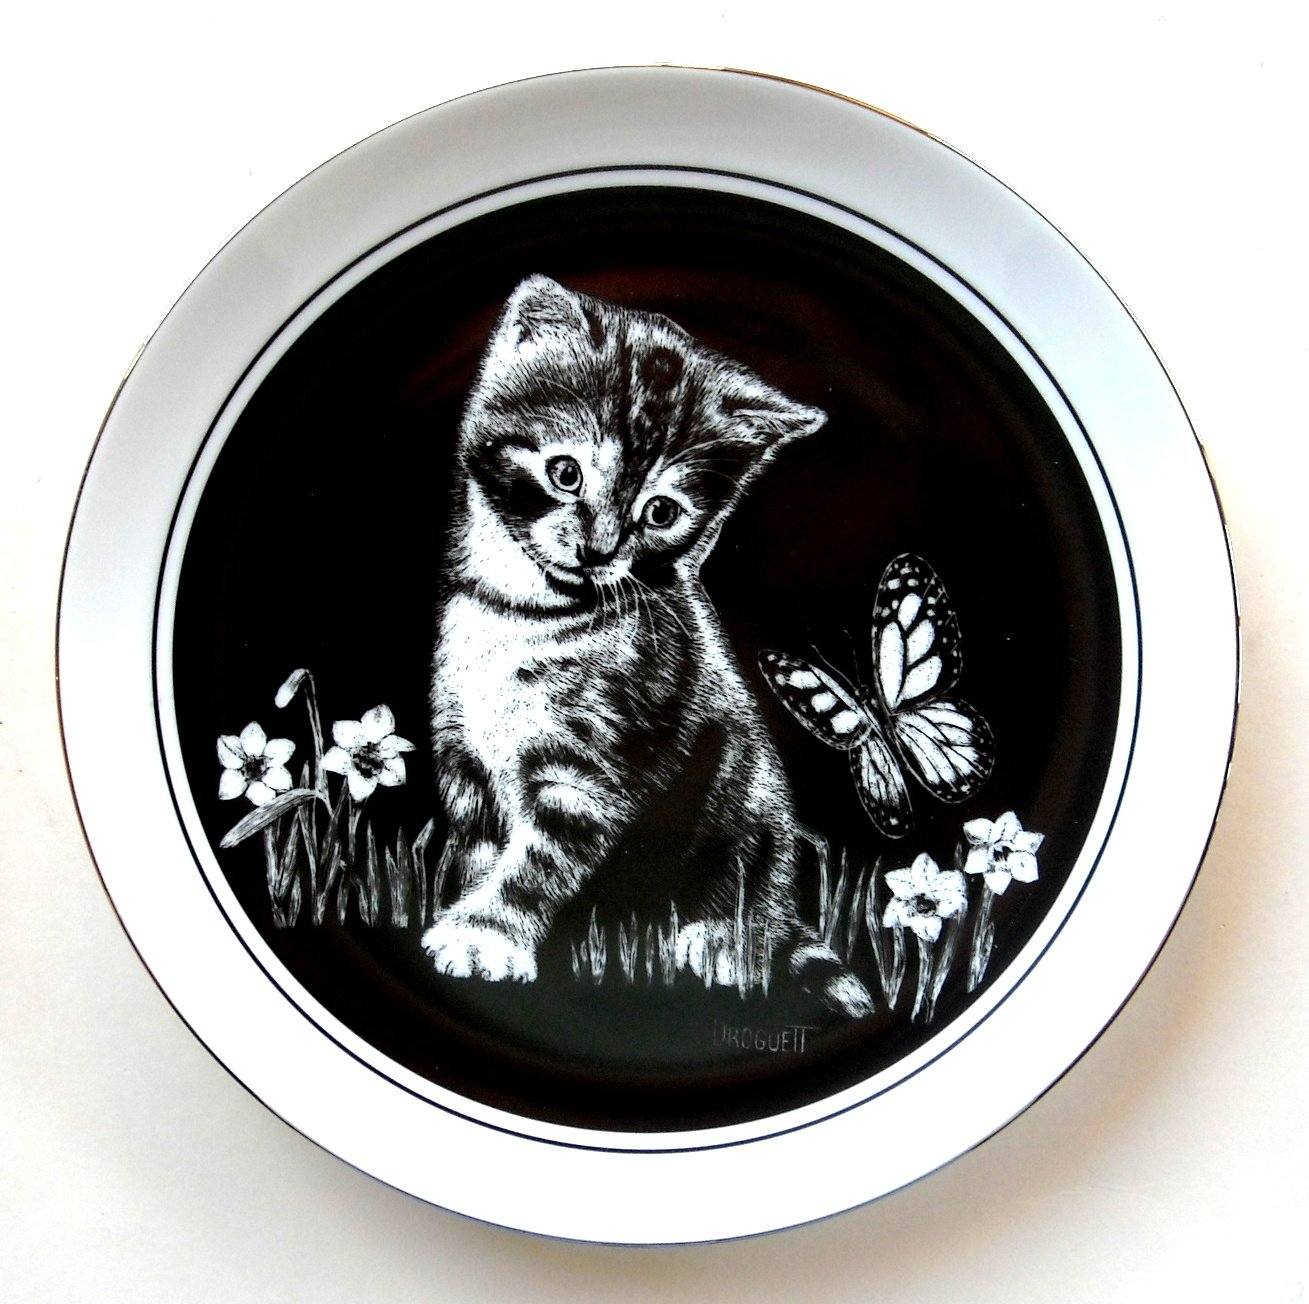 Kittens World Are You A Flower Droguett Royal Cornwall 1979 Porcelain Plate